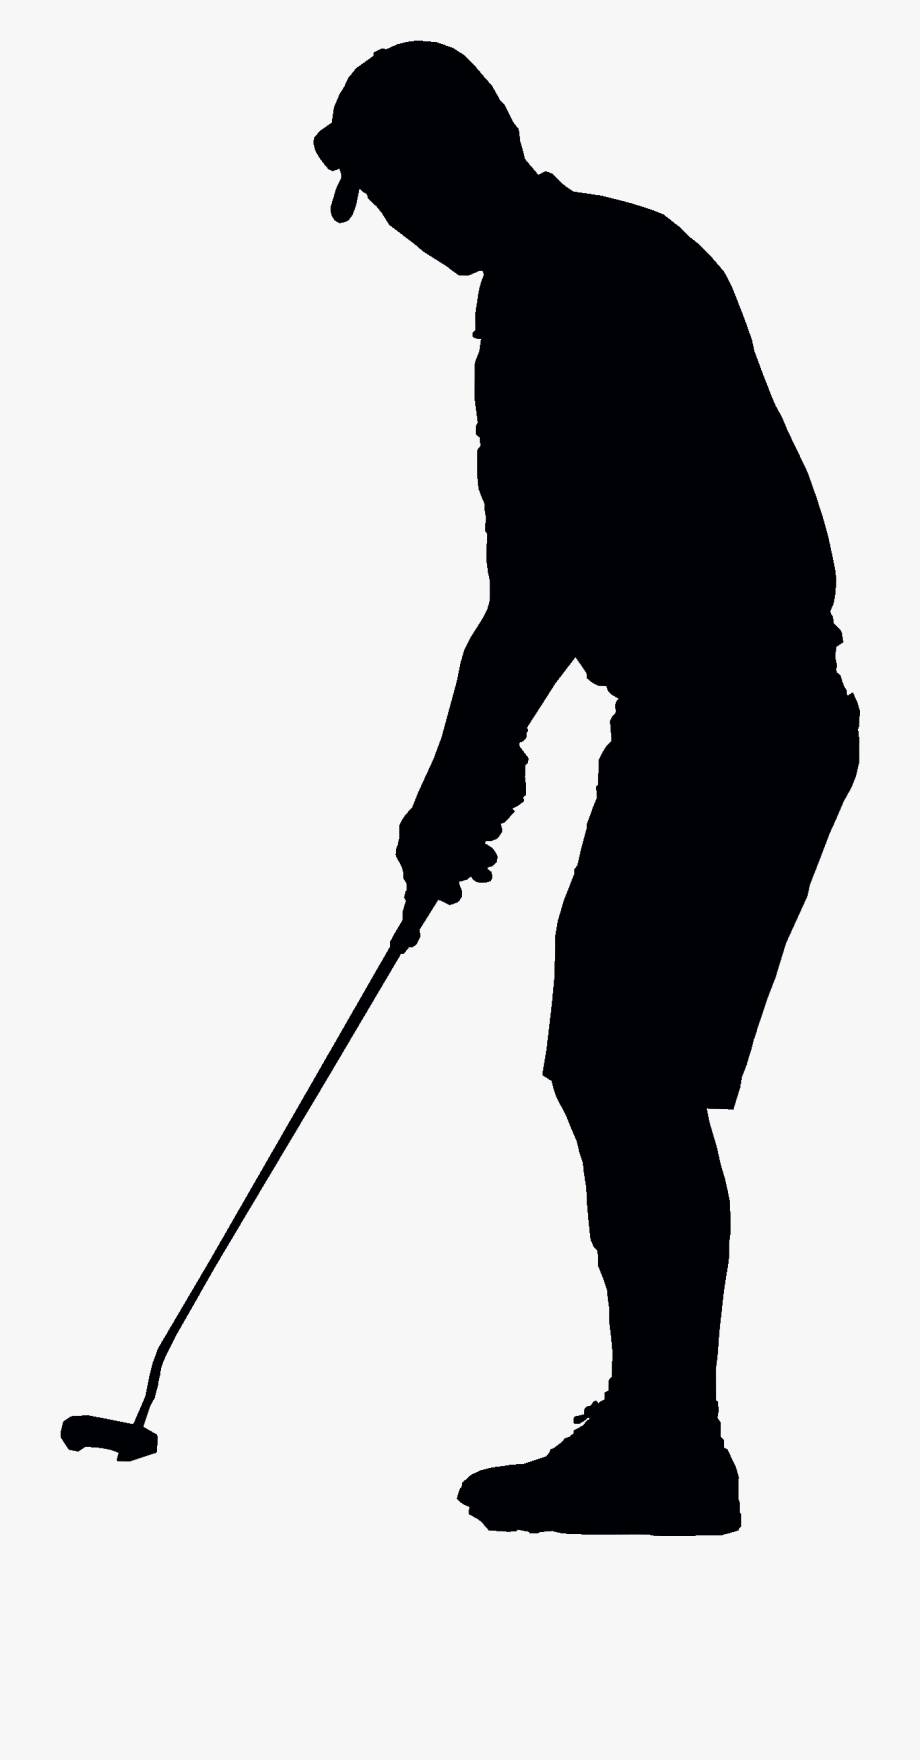 Golfer Free Download Clip Art On Clipart Library.